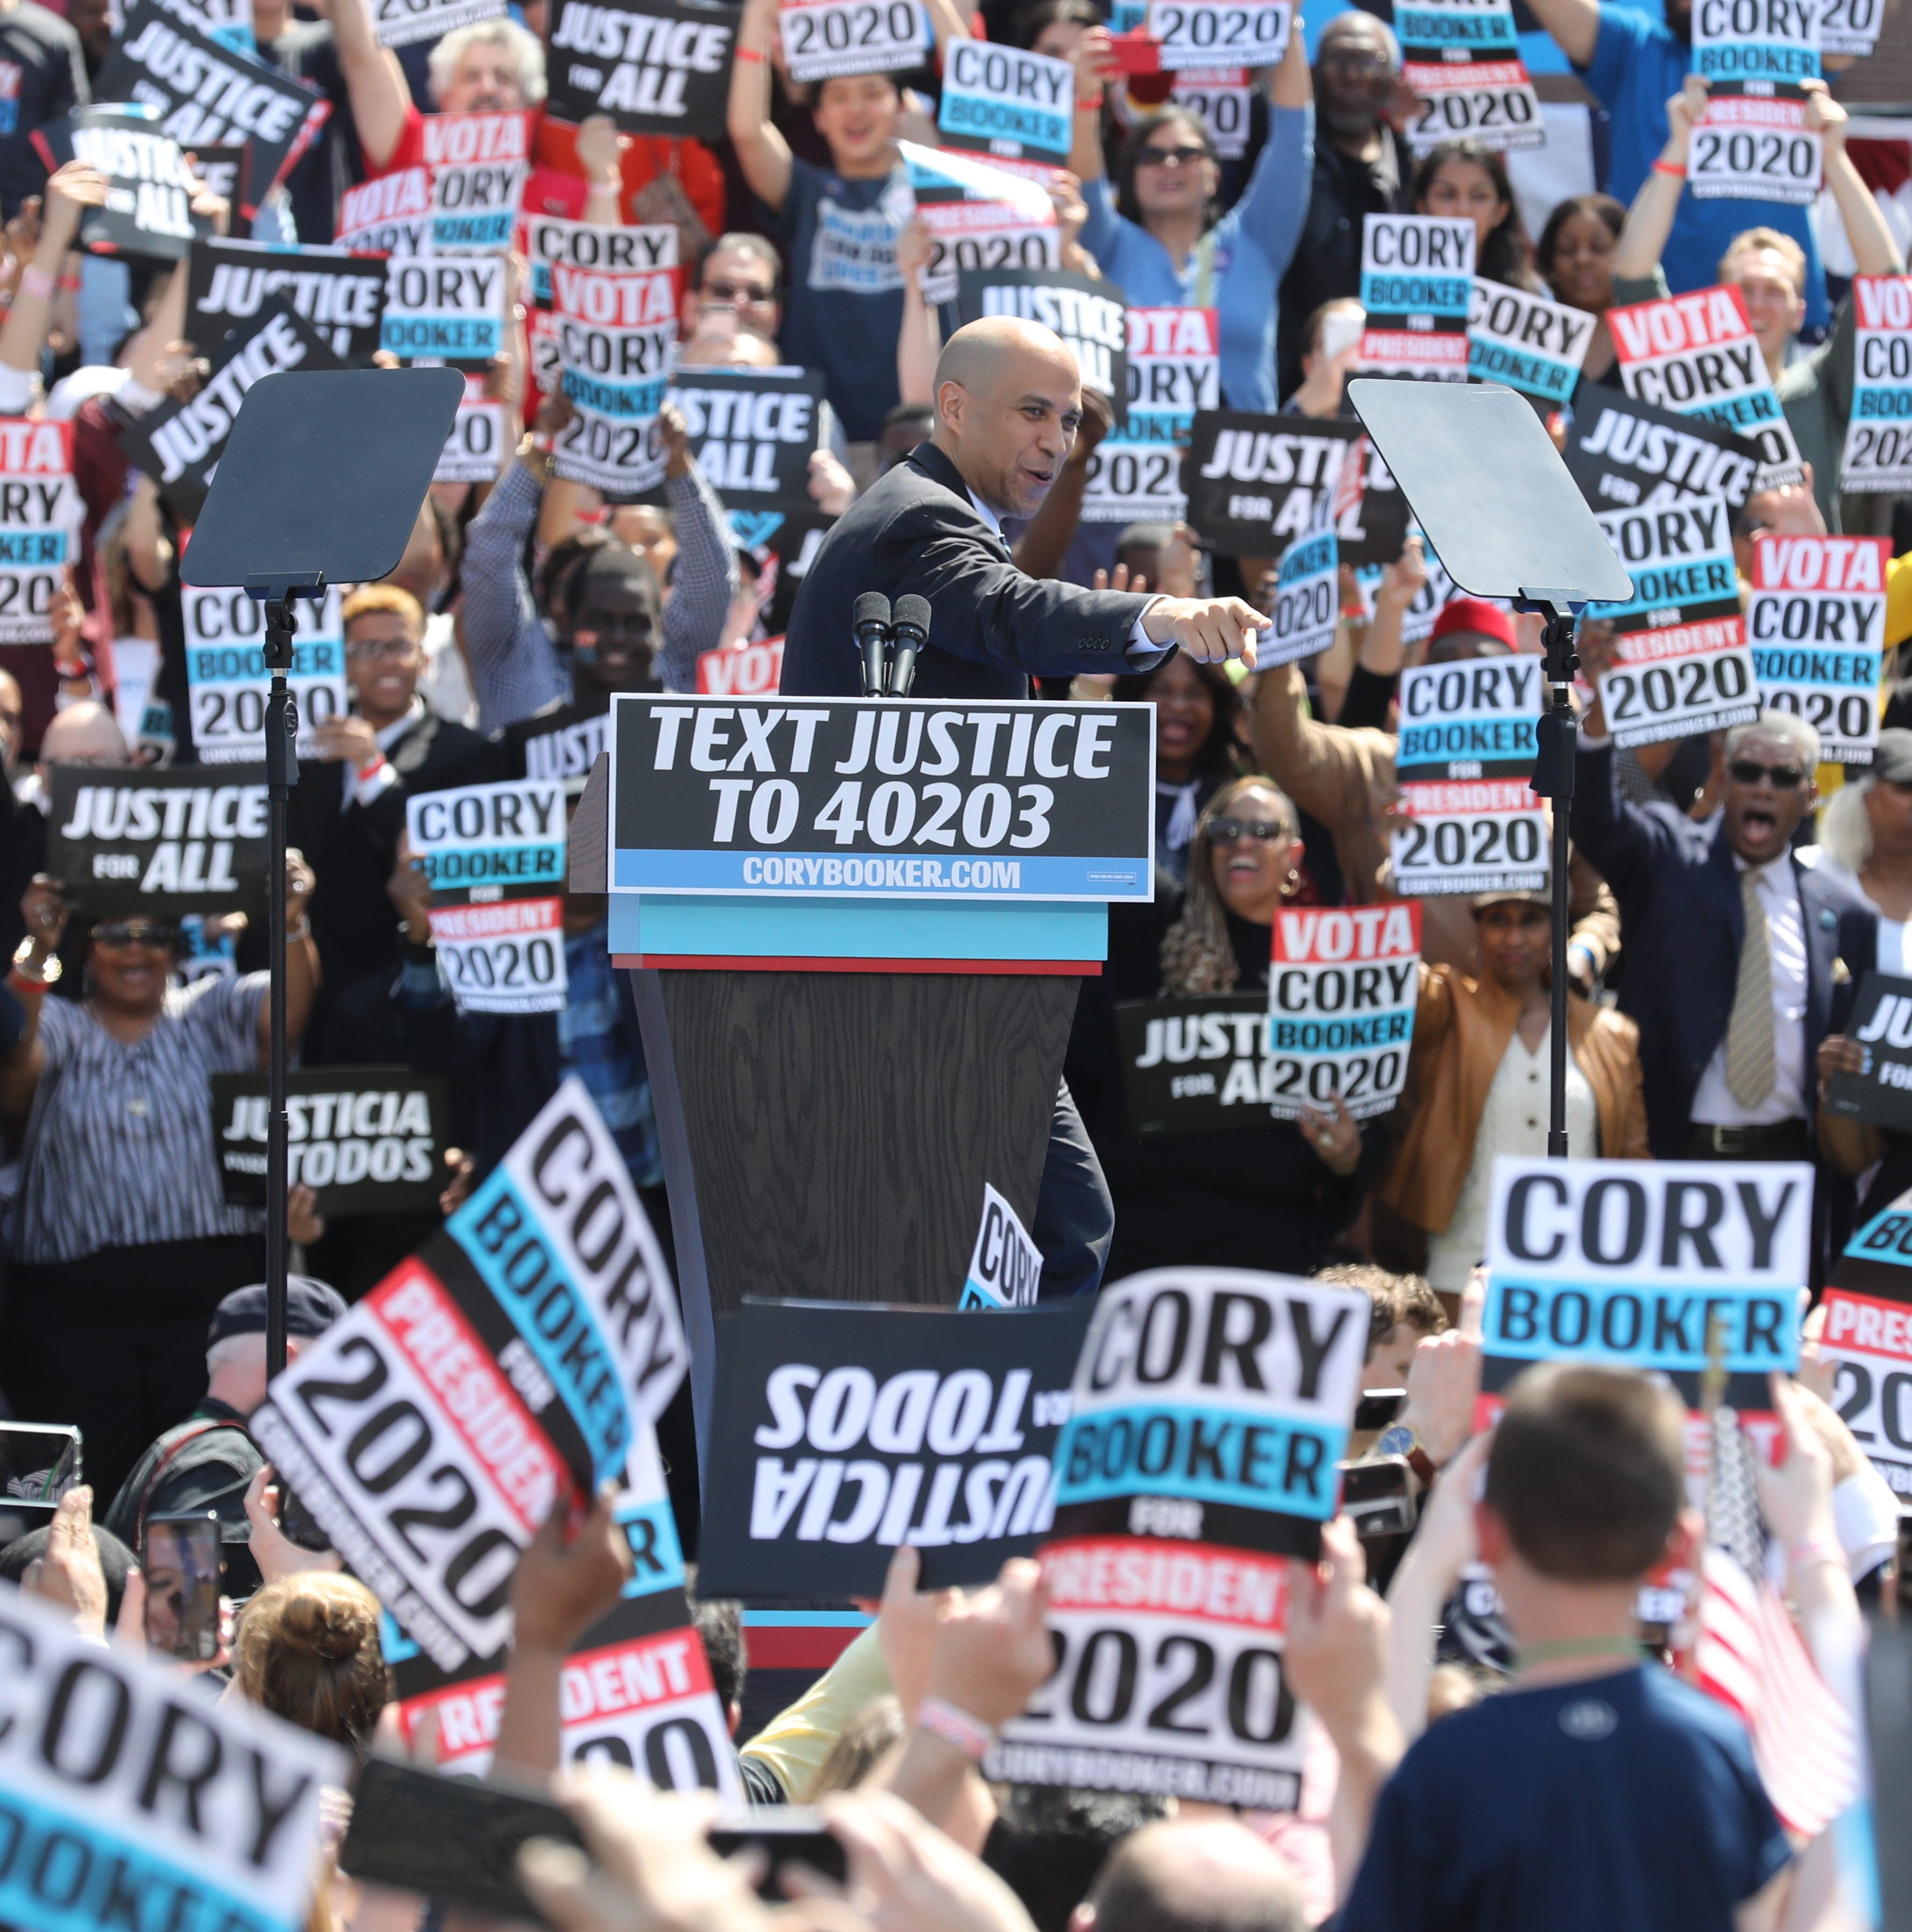 Cory Booker 2020 national campaign kicks off in Newark highlighting social justice mission